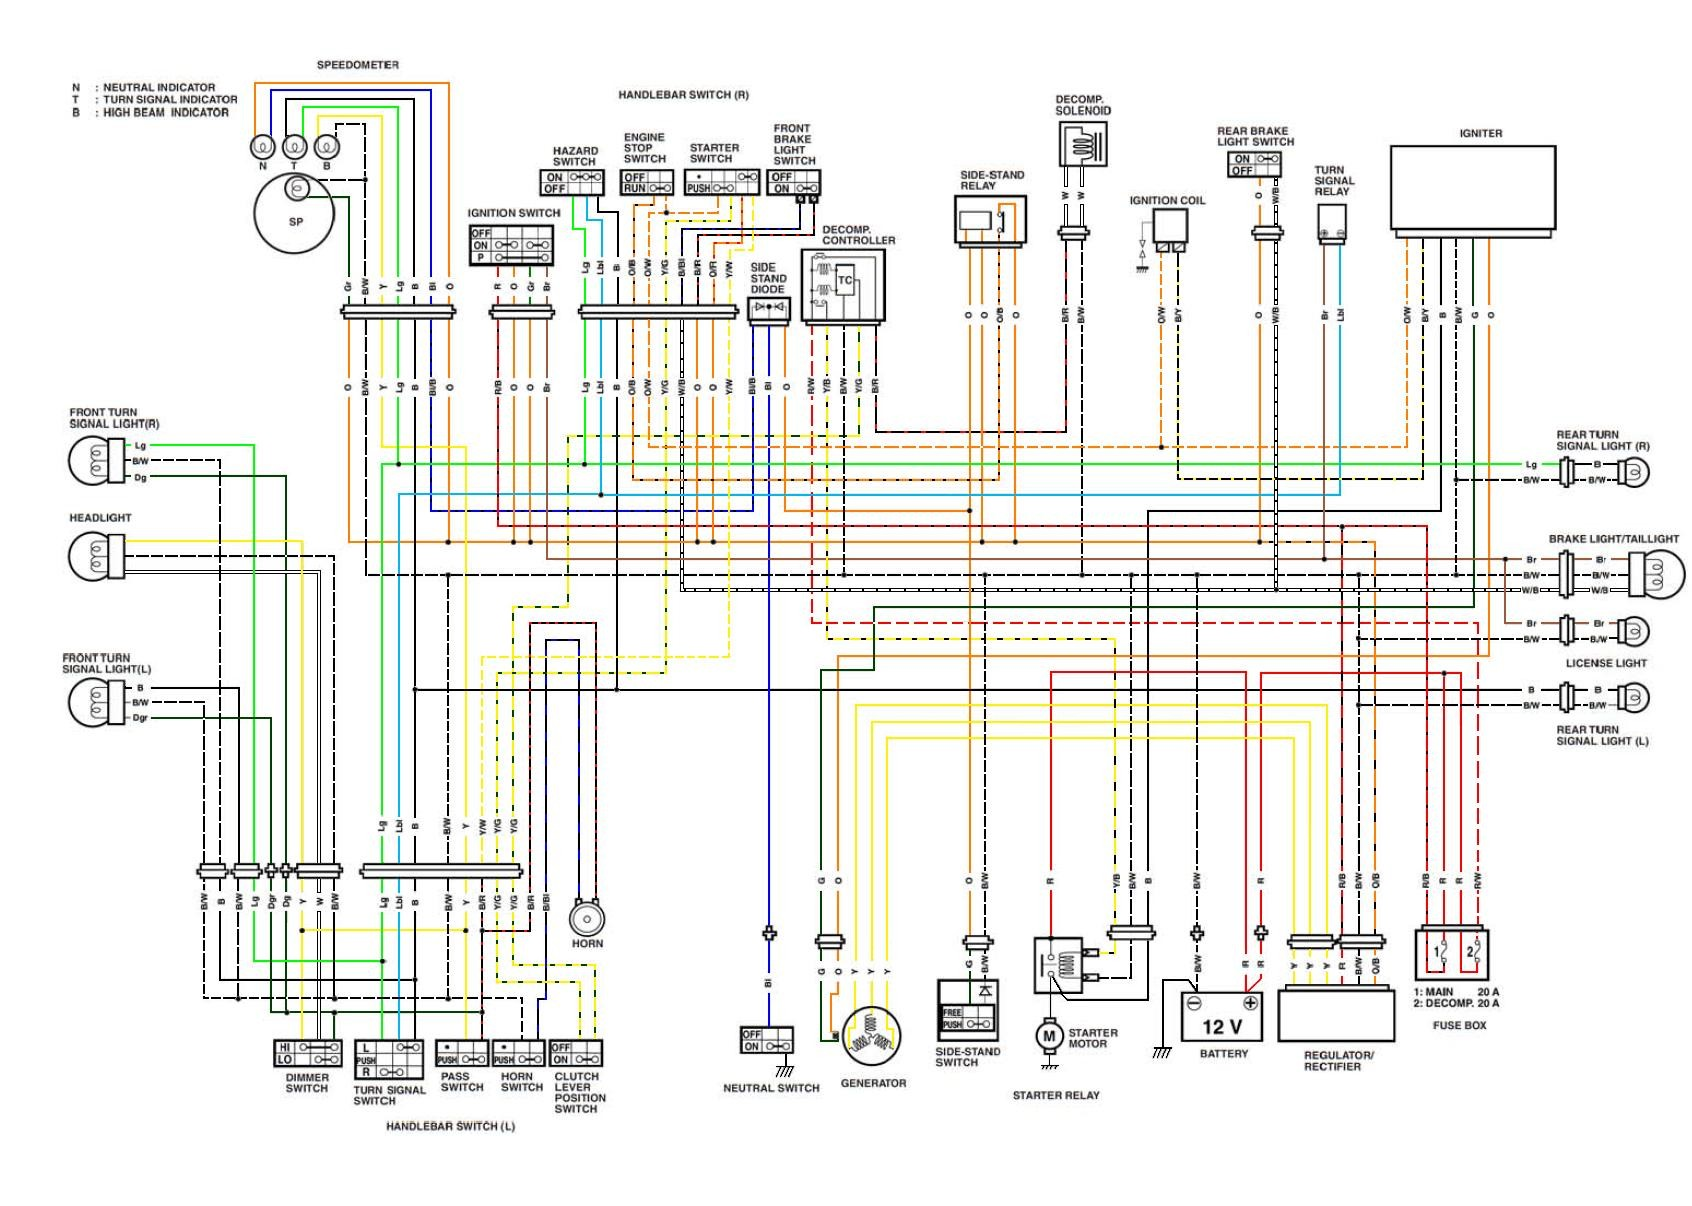 fatboy wiring harness wiring diagram library fatboy wiring harness wiring diagram todaysfatboy wiring harness wiring library 7 pin wiring harness dyna tail